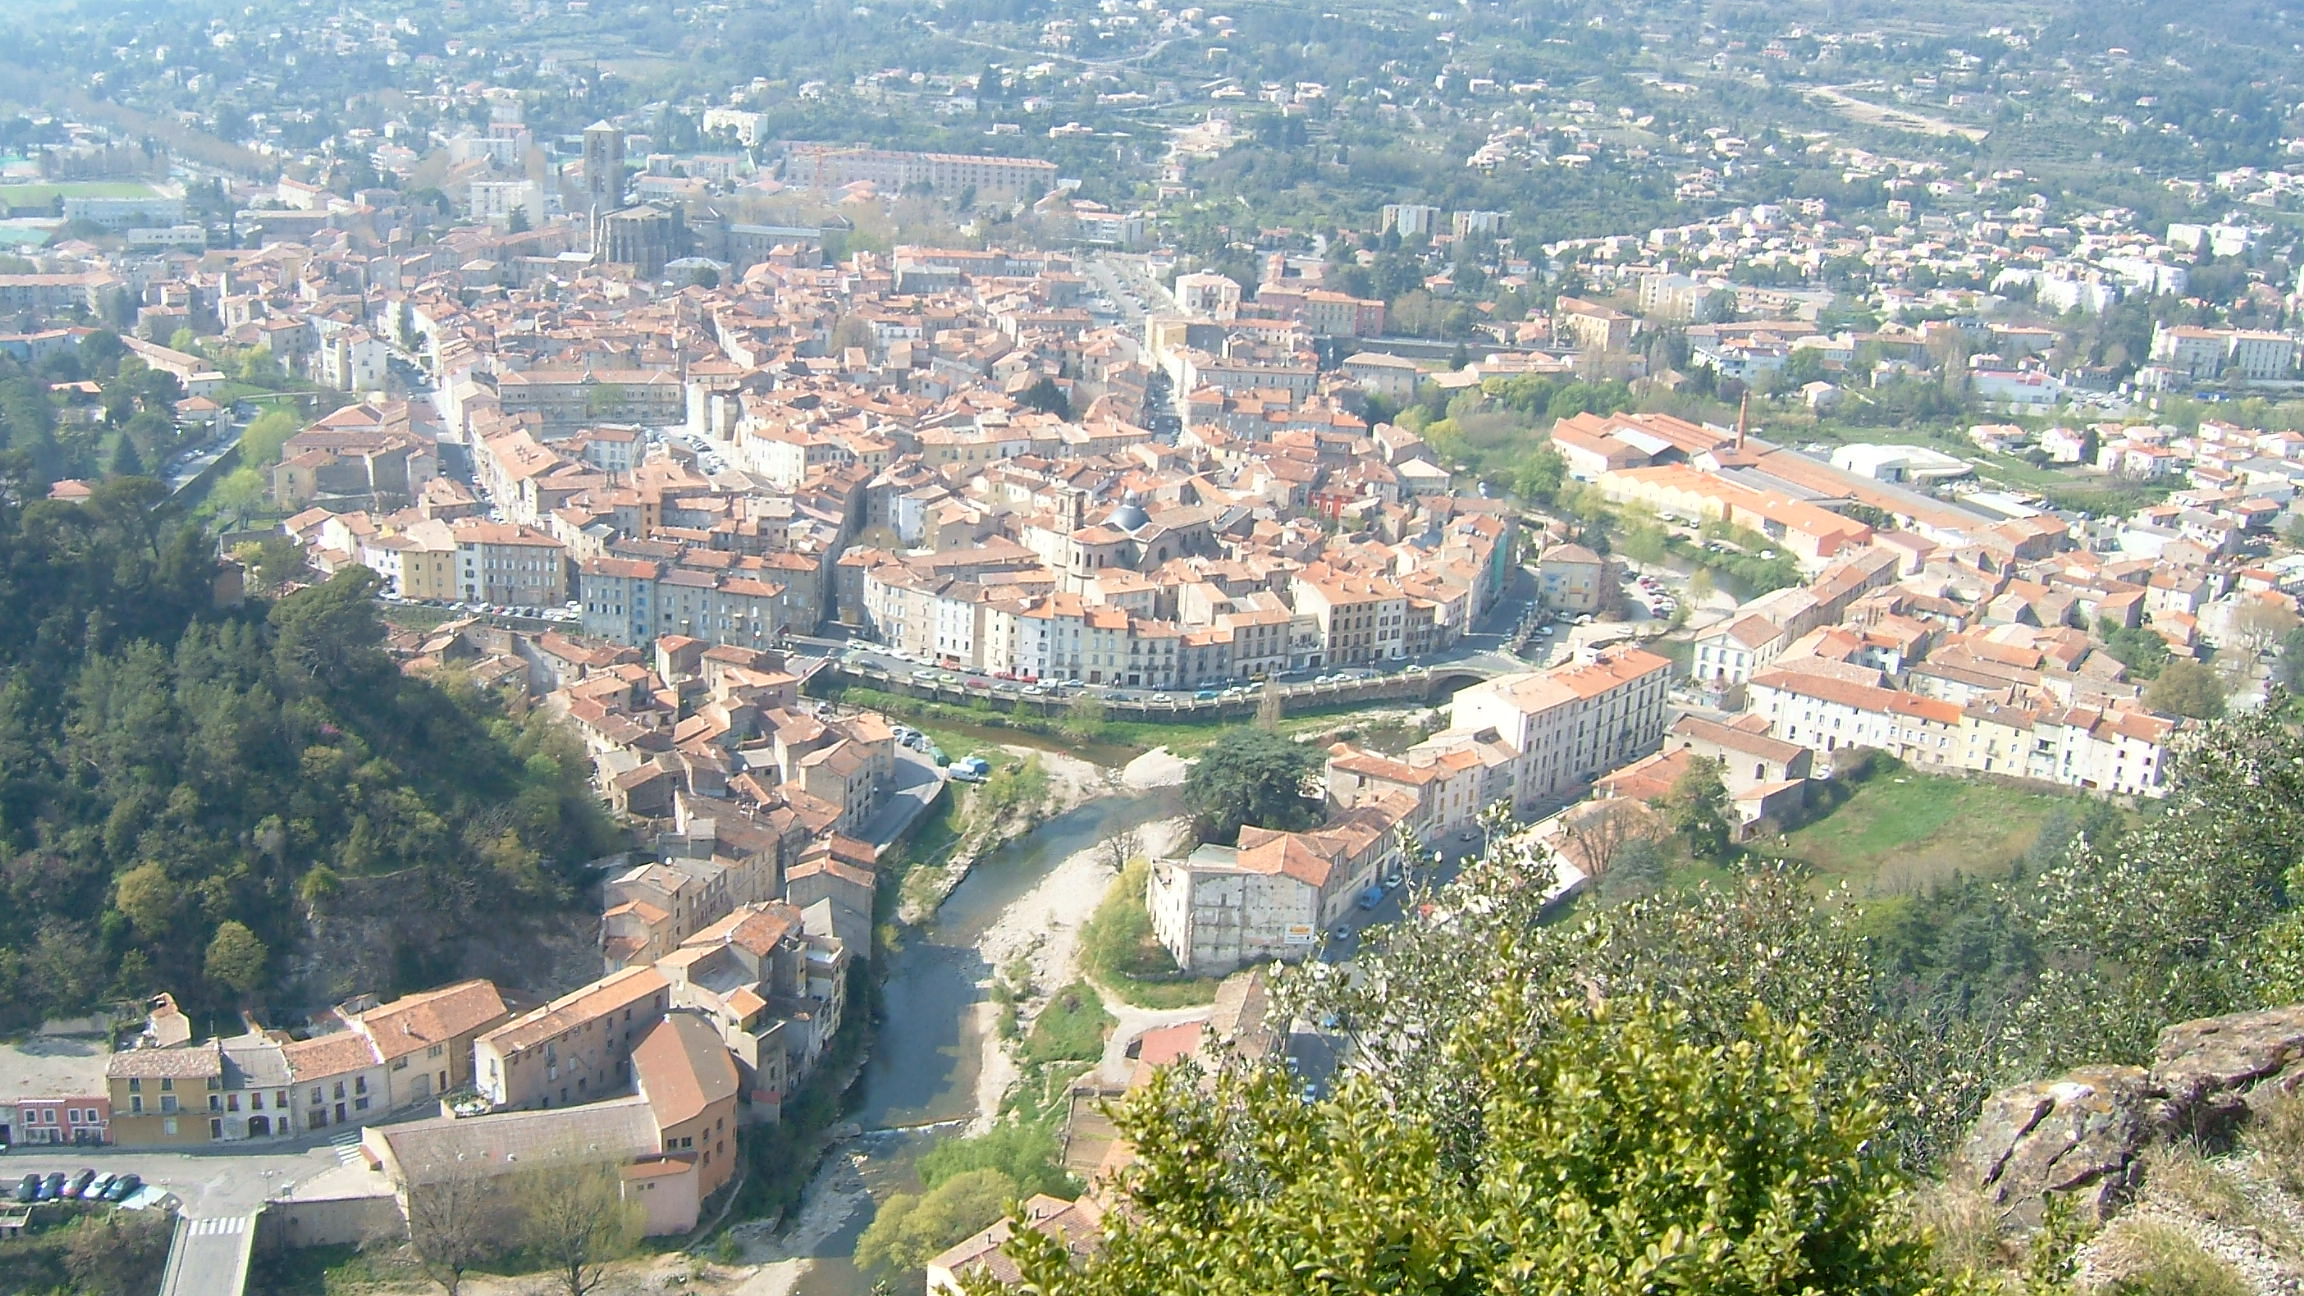 01_Lodeve_long_view_from_La_Virge_hilltop.jpg